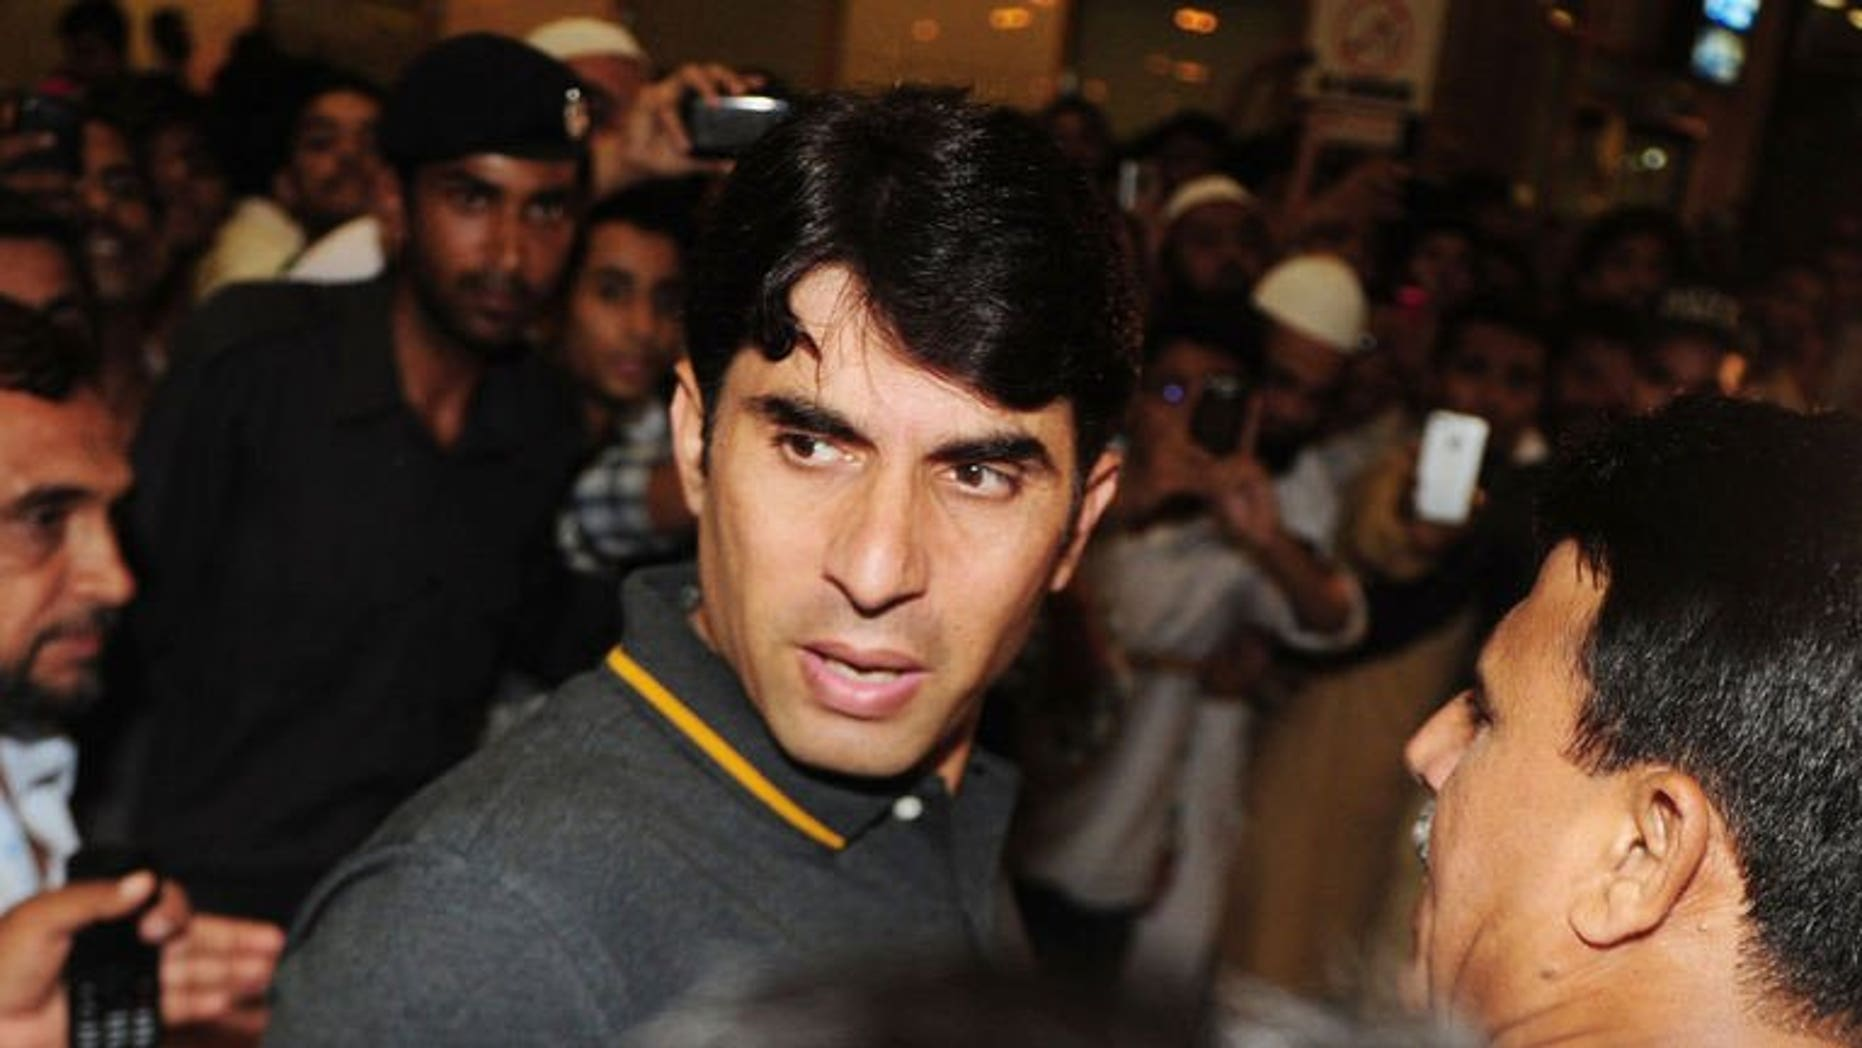 Pakistan ODI cricket captain Misbah-ul Haq (C) arrives at Karachi International Airport before his departure to the Caribbean, in Karachi on July 7, 2013. Pakistan's one-day squad left for the Caribbean with Misbah hoping to reverse the team's dwindling fortunes in the limited over matches.